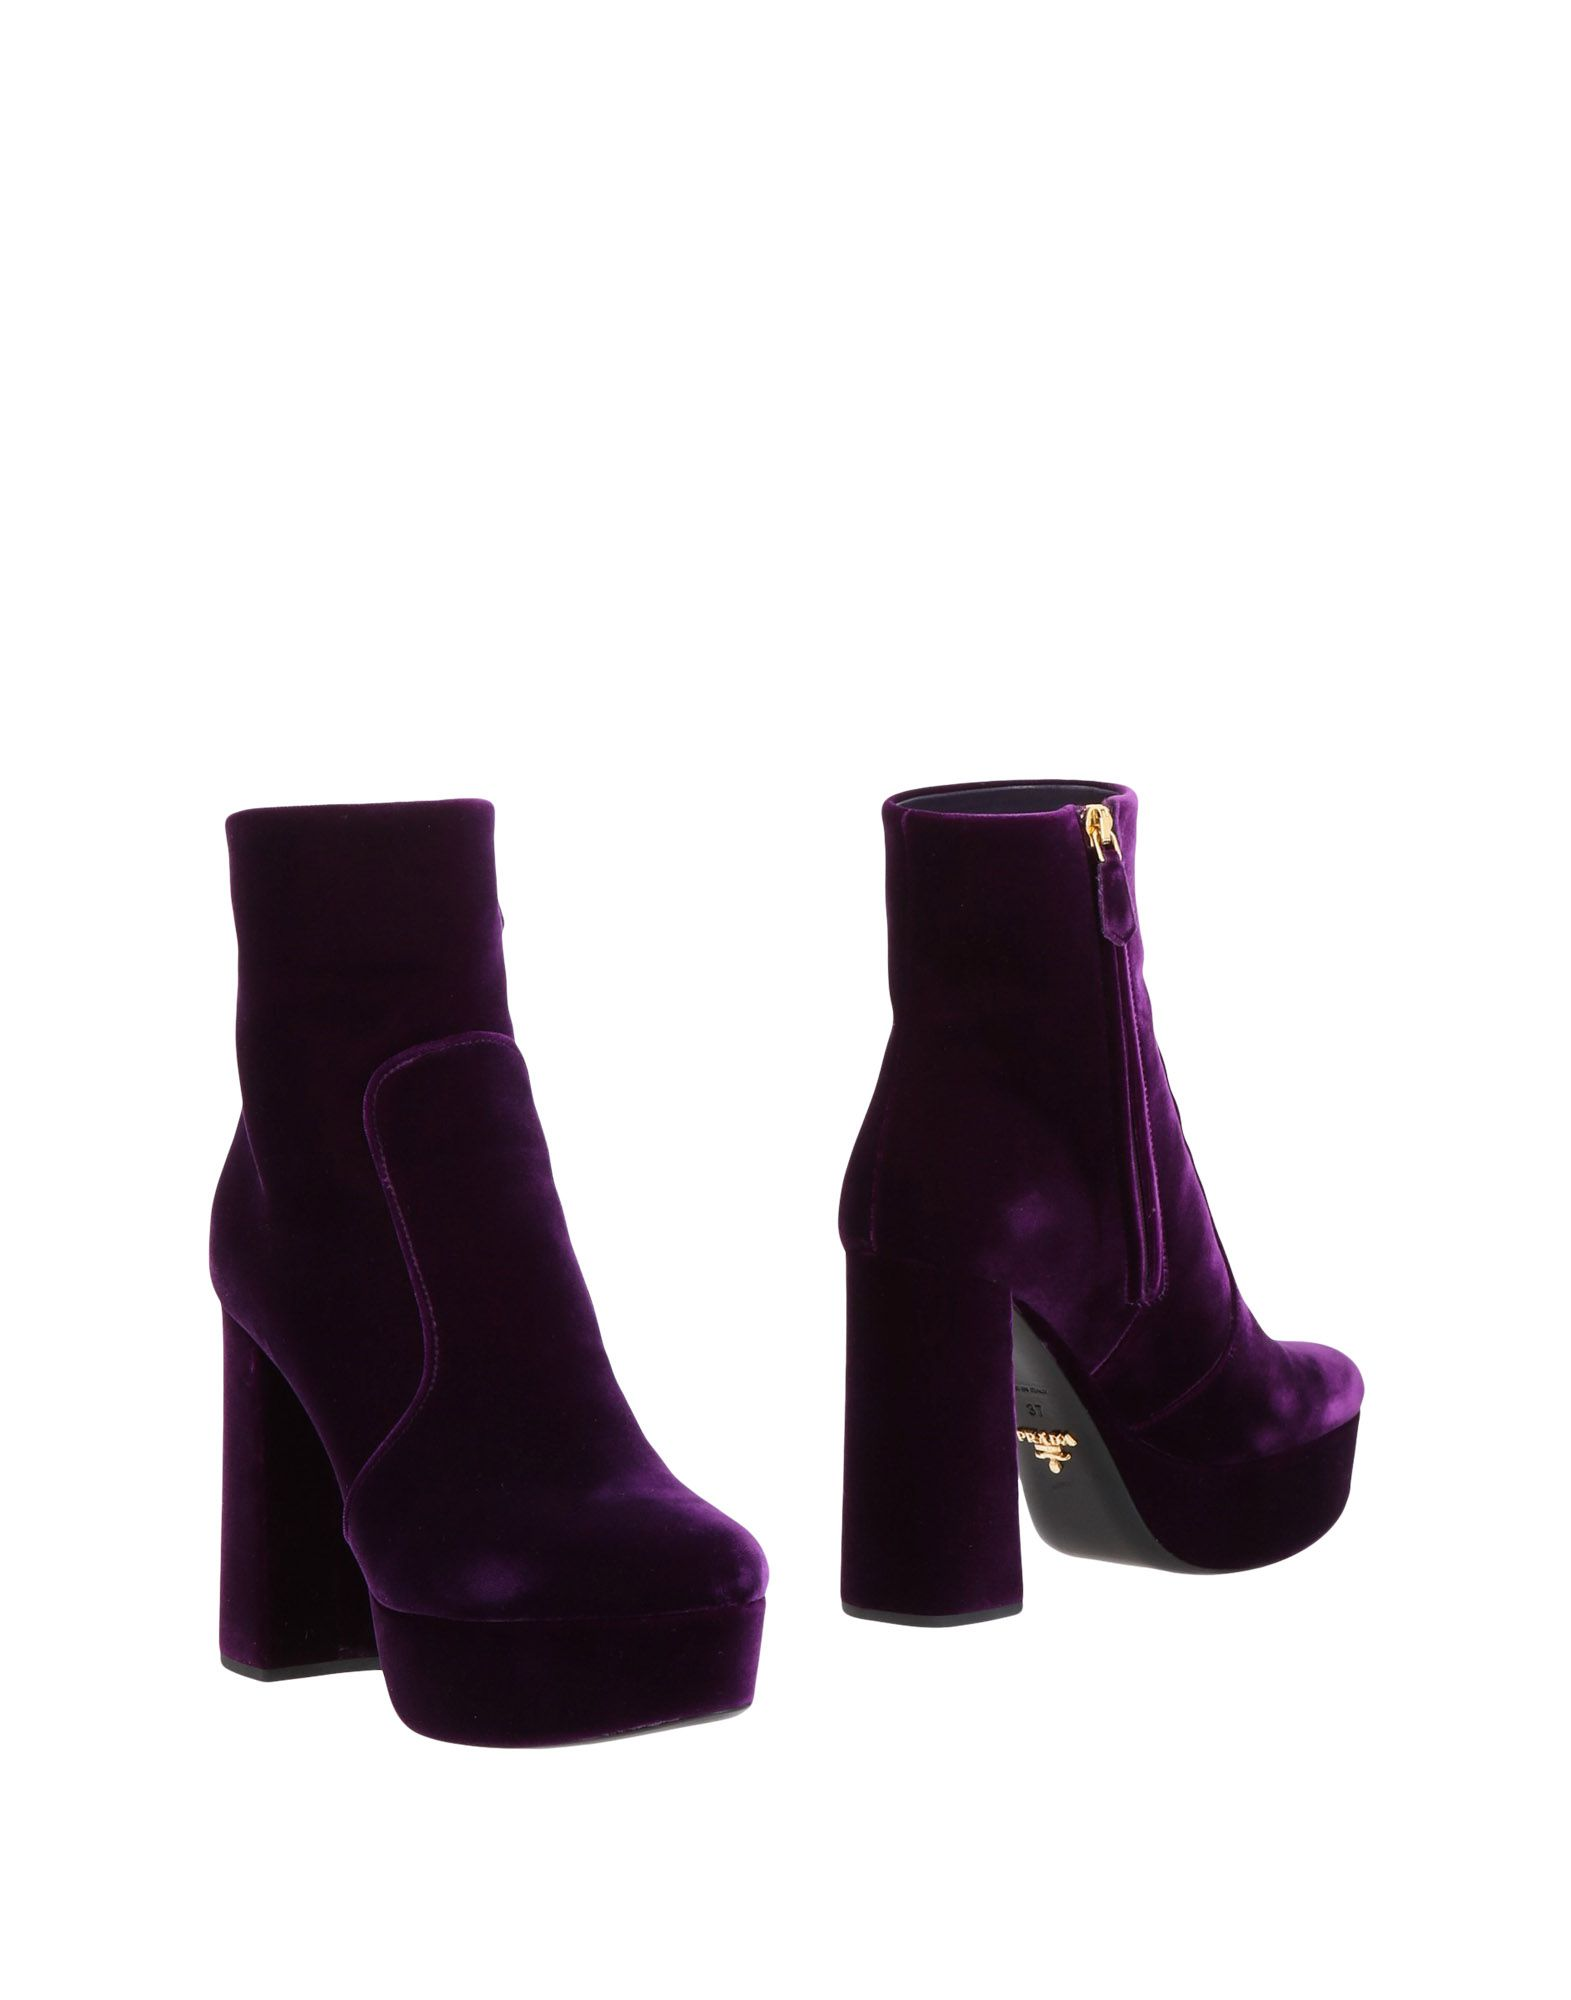 Prada Ankle Boot Boots - Women Prada Ankle Boots Boot online on  United Kingdom - 11463734DQ 6e3d3c